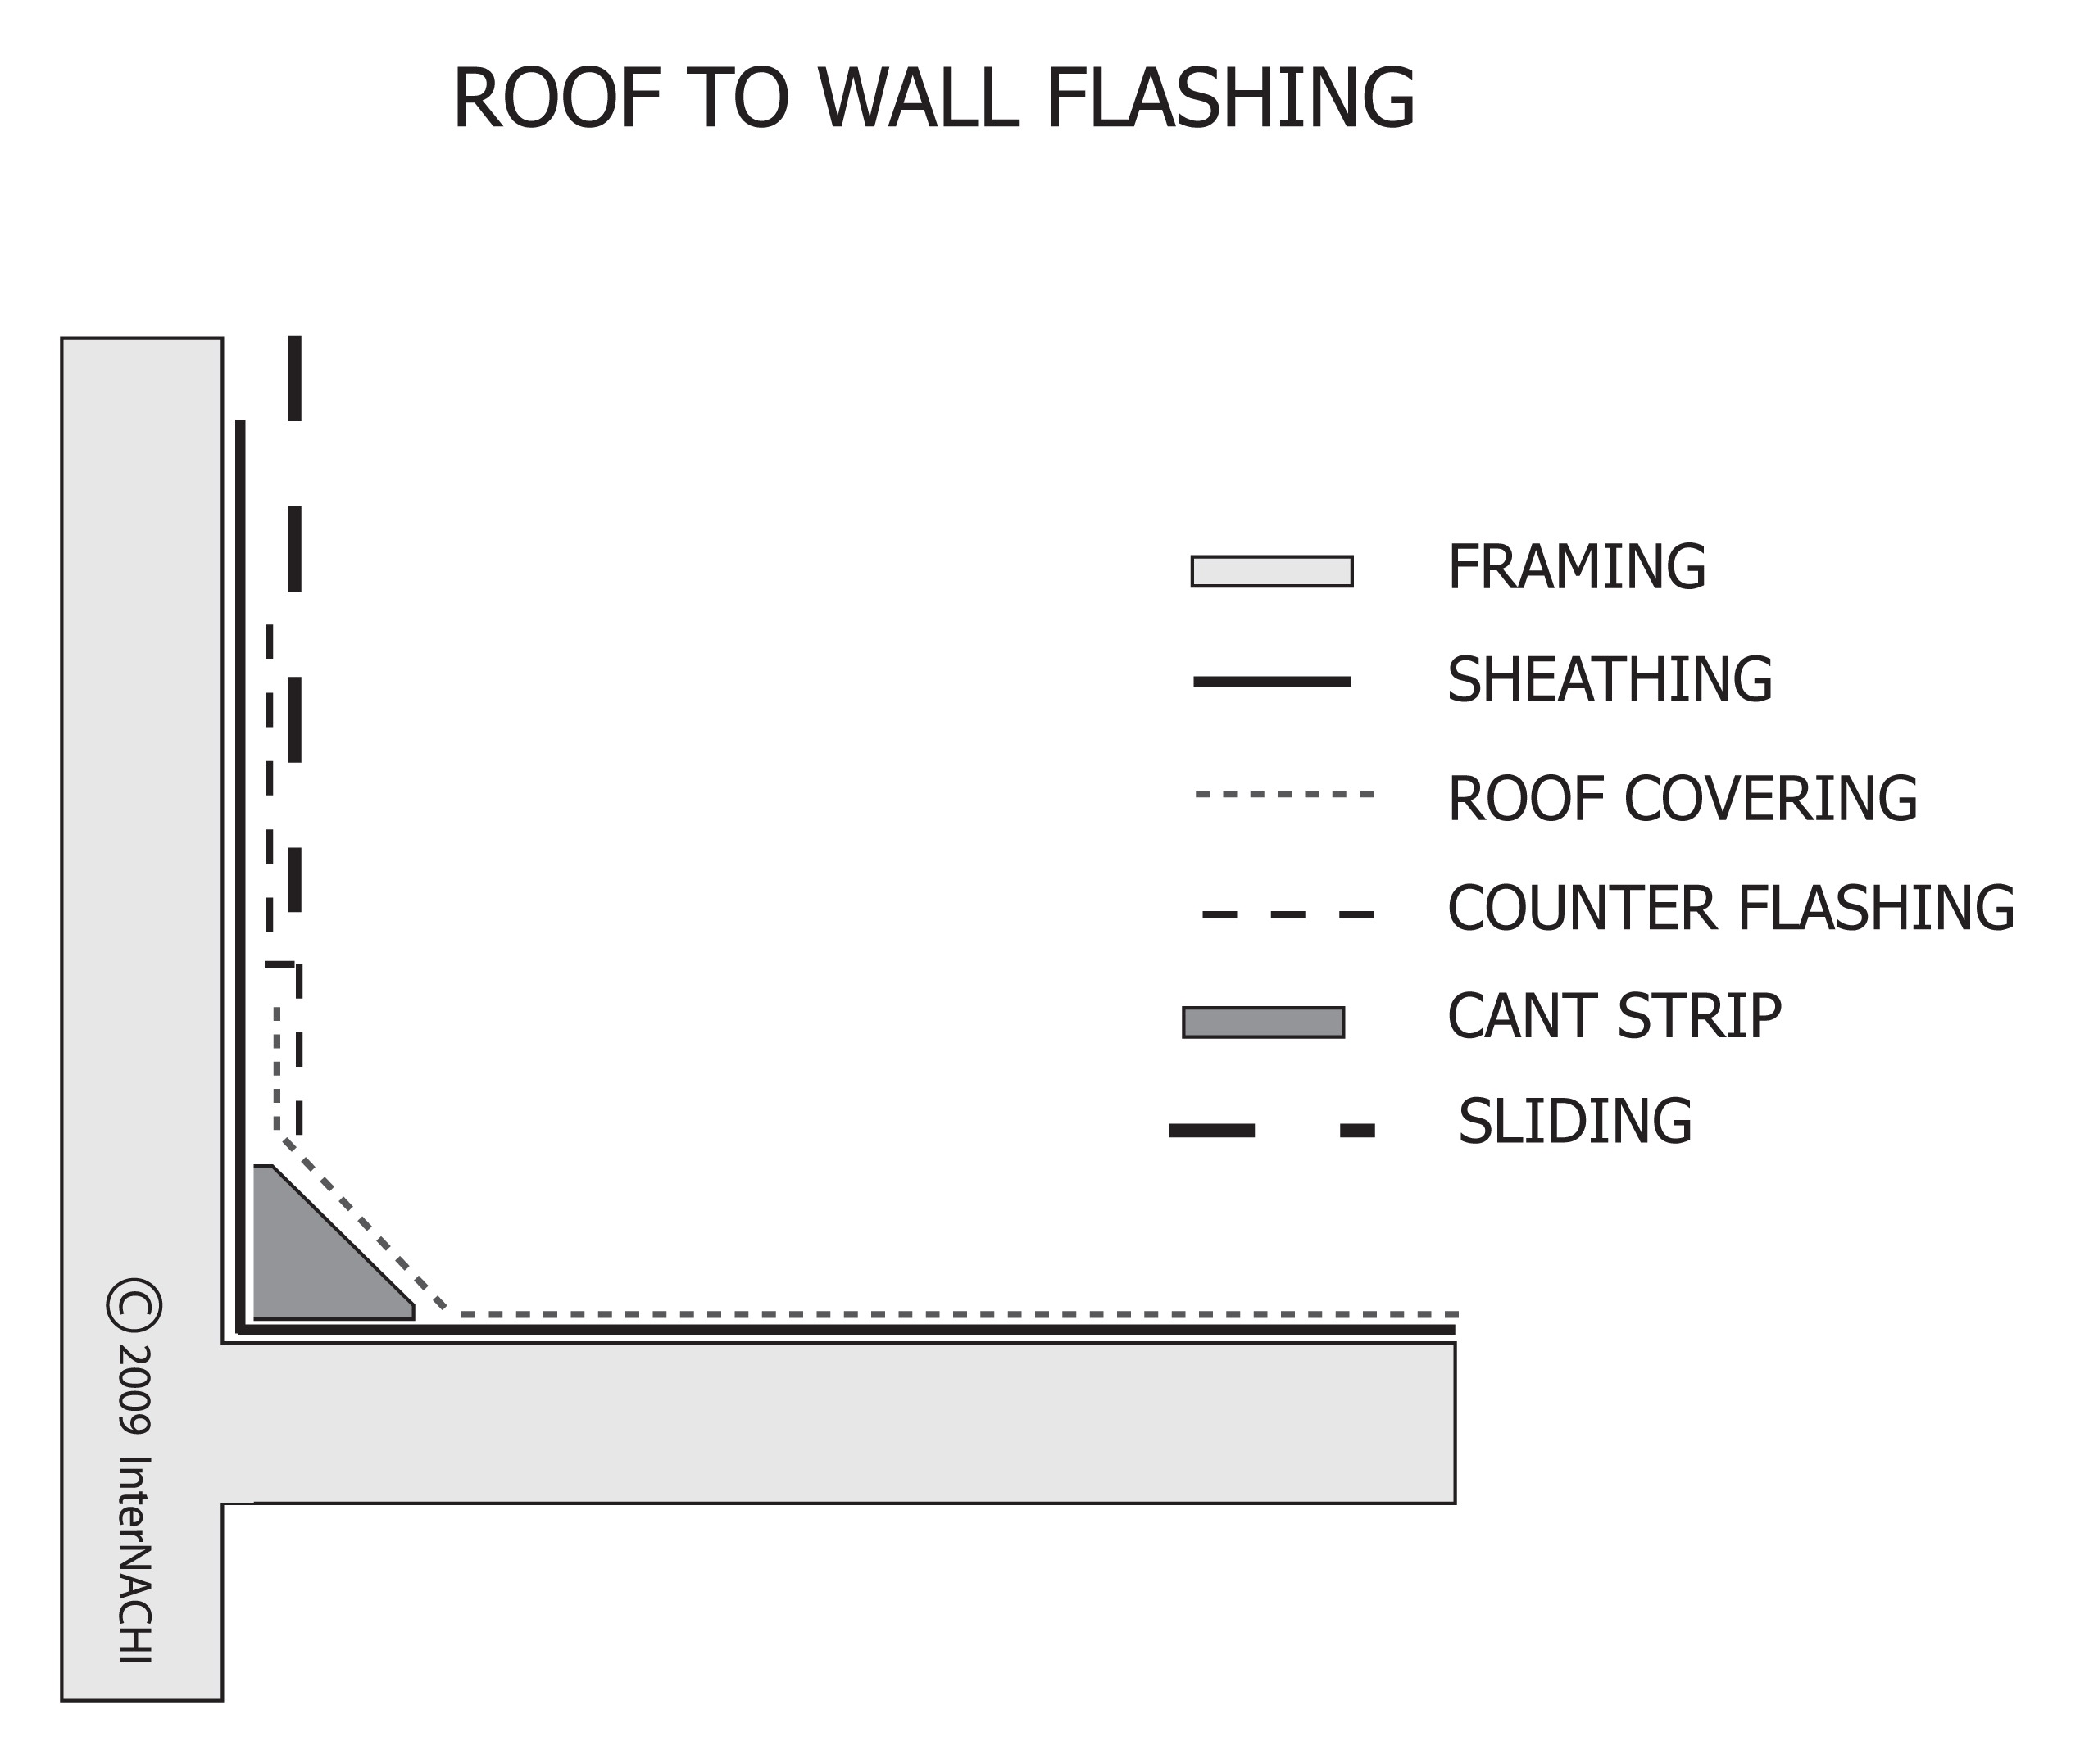 Roof to wall flashing.